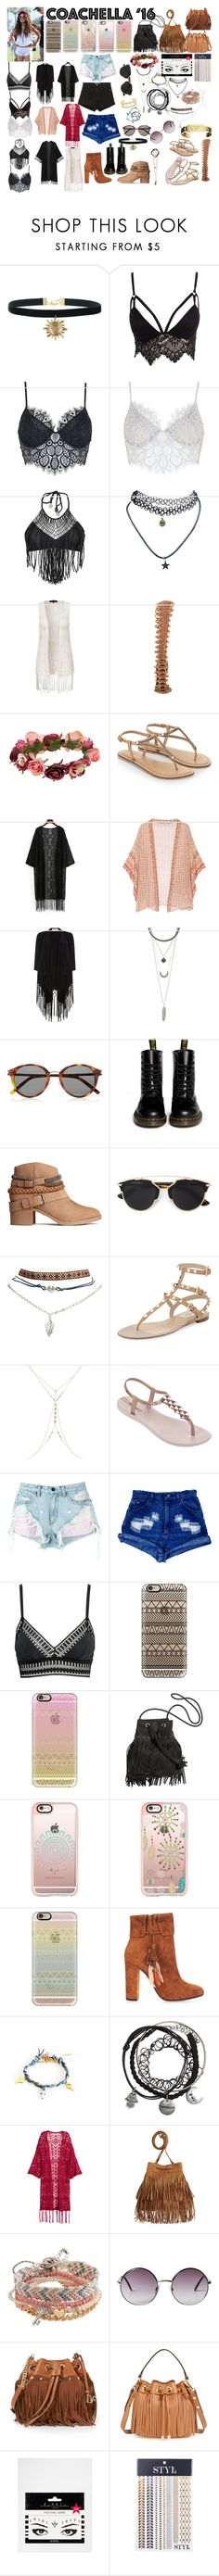 """""""Coachella '16 Styles"""" by angelbrubisc ❤ liked on Polyvore featuring Club L, For Love & Lemons, Luli Fama, Wet Seal, New Look, Liliana, Forever 21, Accessorize, Mes Demoiselles... and Soaked in Luxury"""